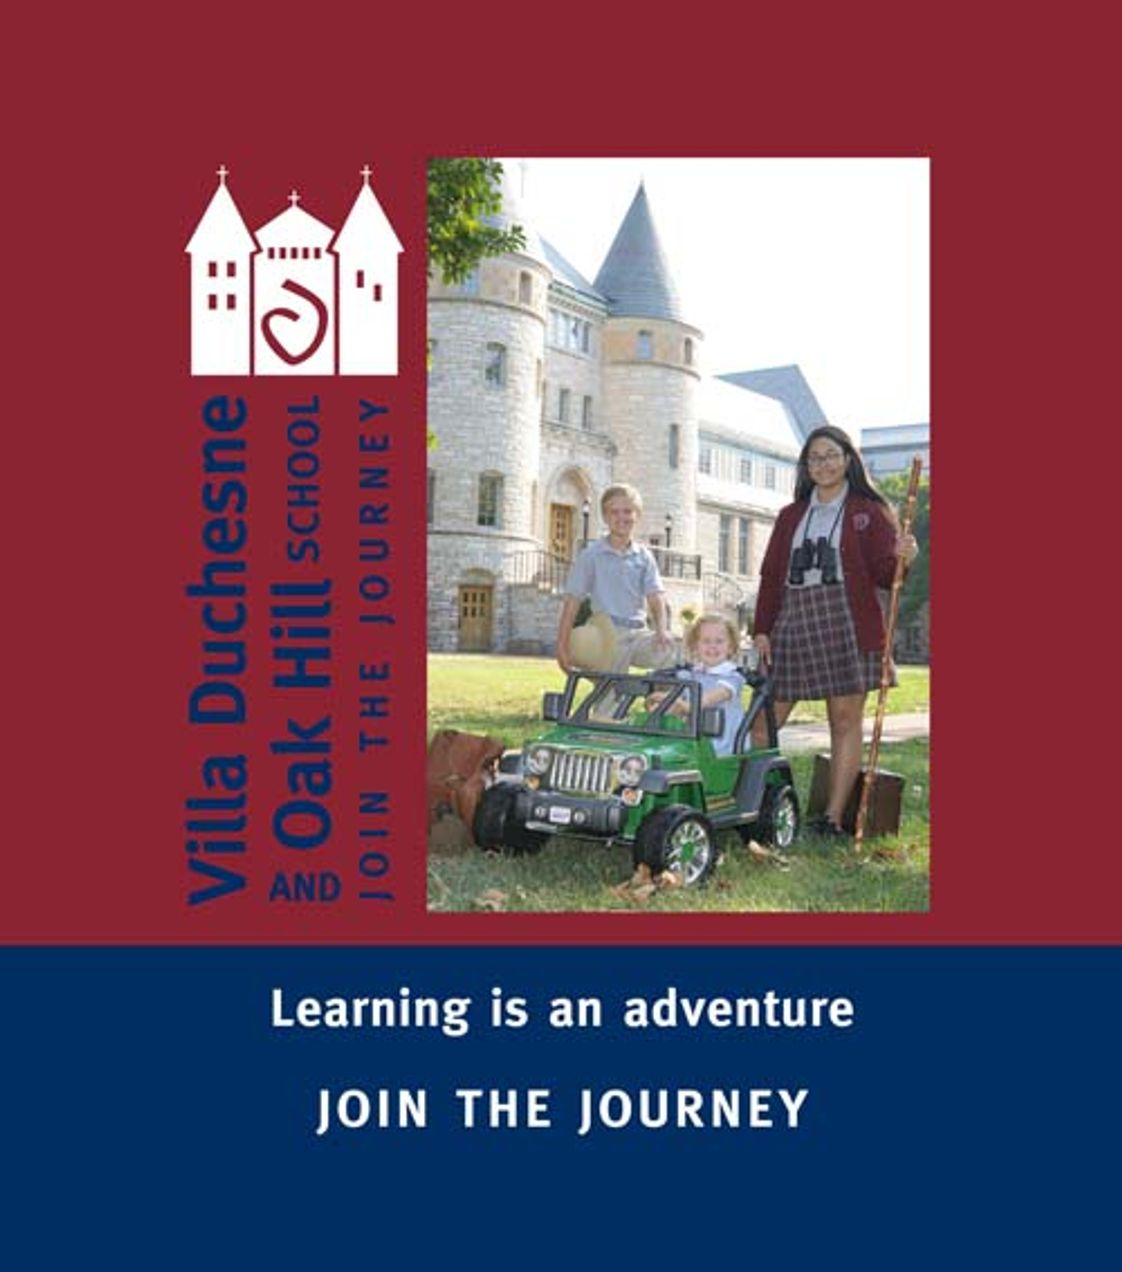 Villa Duchesne & Oak Hill School Photo - Learning is an adventure.